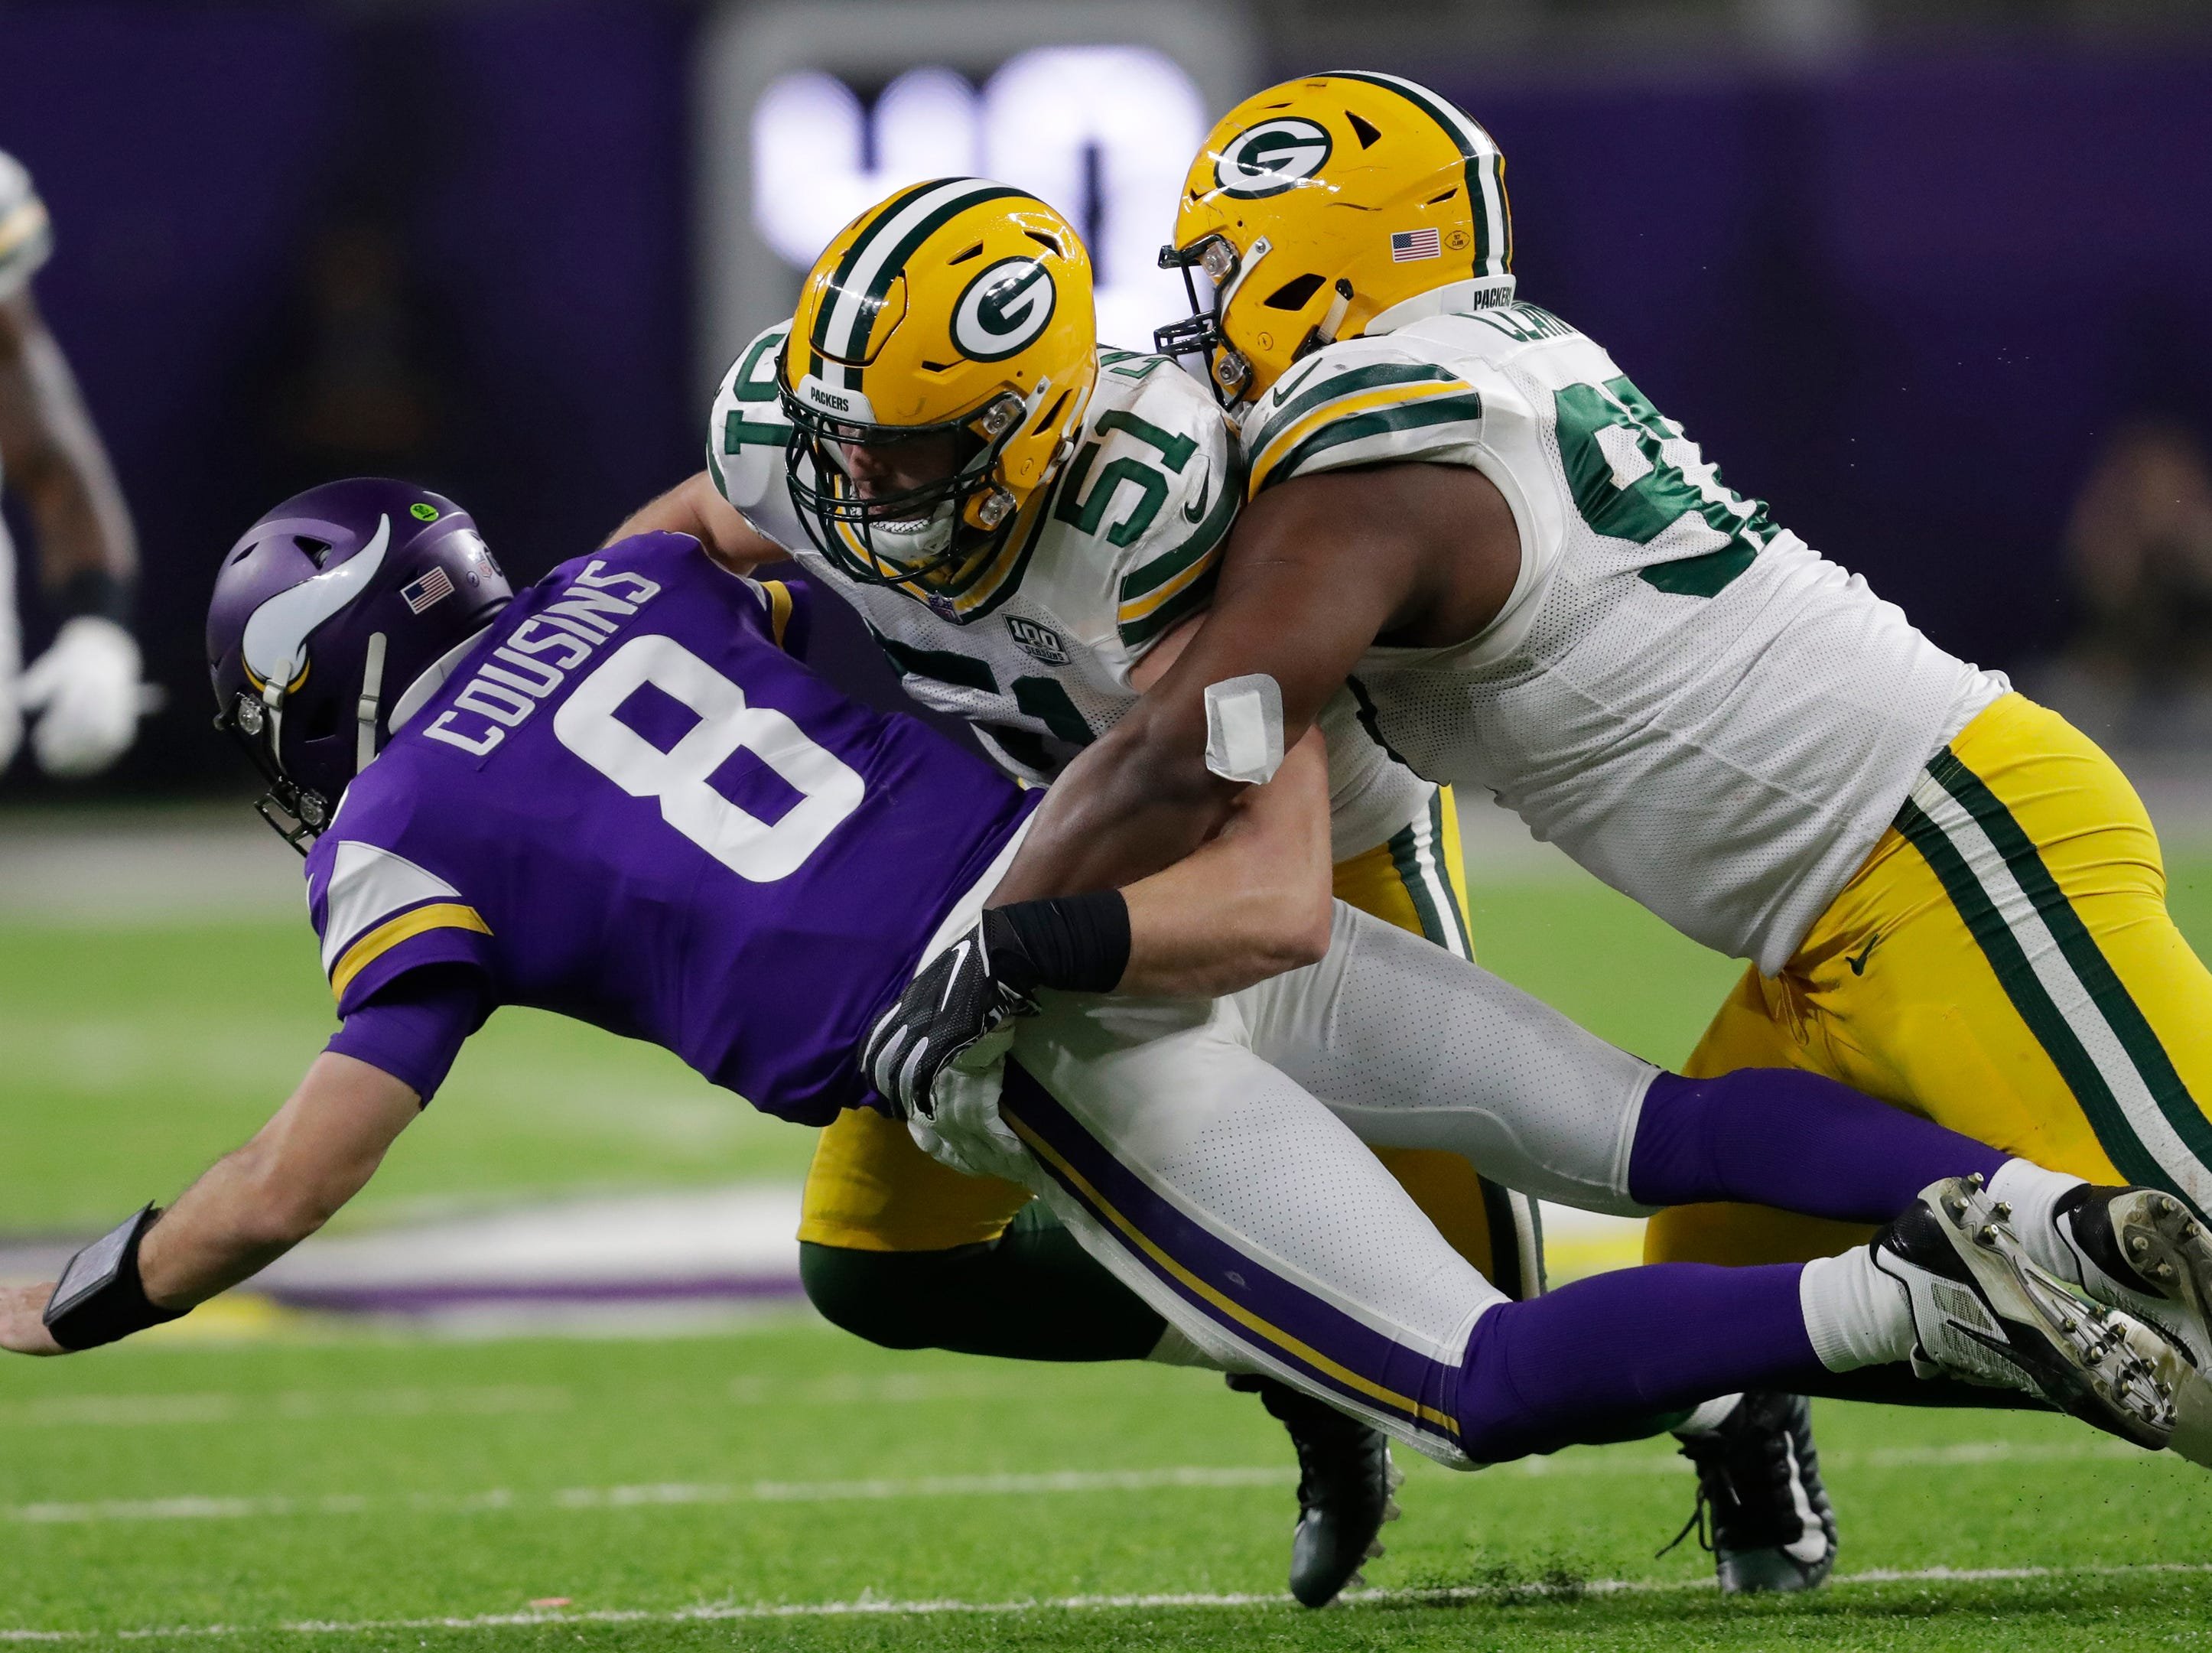 Green Bay Packers linebacker Kyler Fackrell (51) tackles Minnesota Vikings quarterback Kirk Cousins (8) in the third quarter during their football game Sunday, November 25, 2018, at U.S. Bank Stadium in Minneapolis, Minn. 